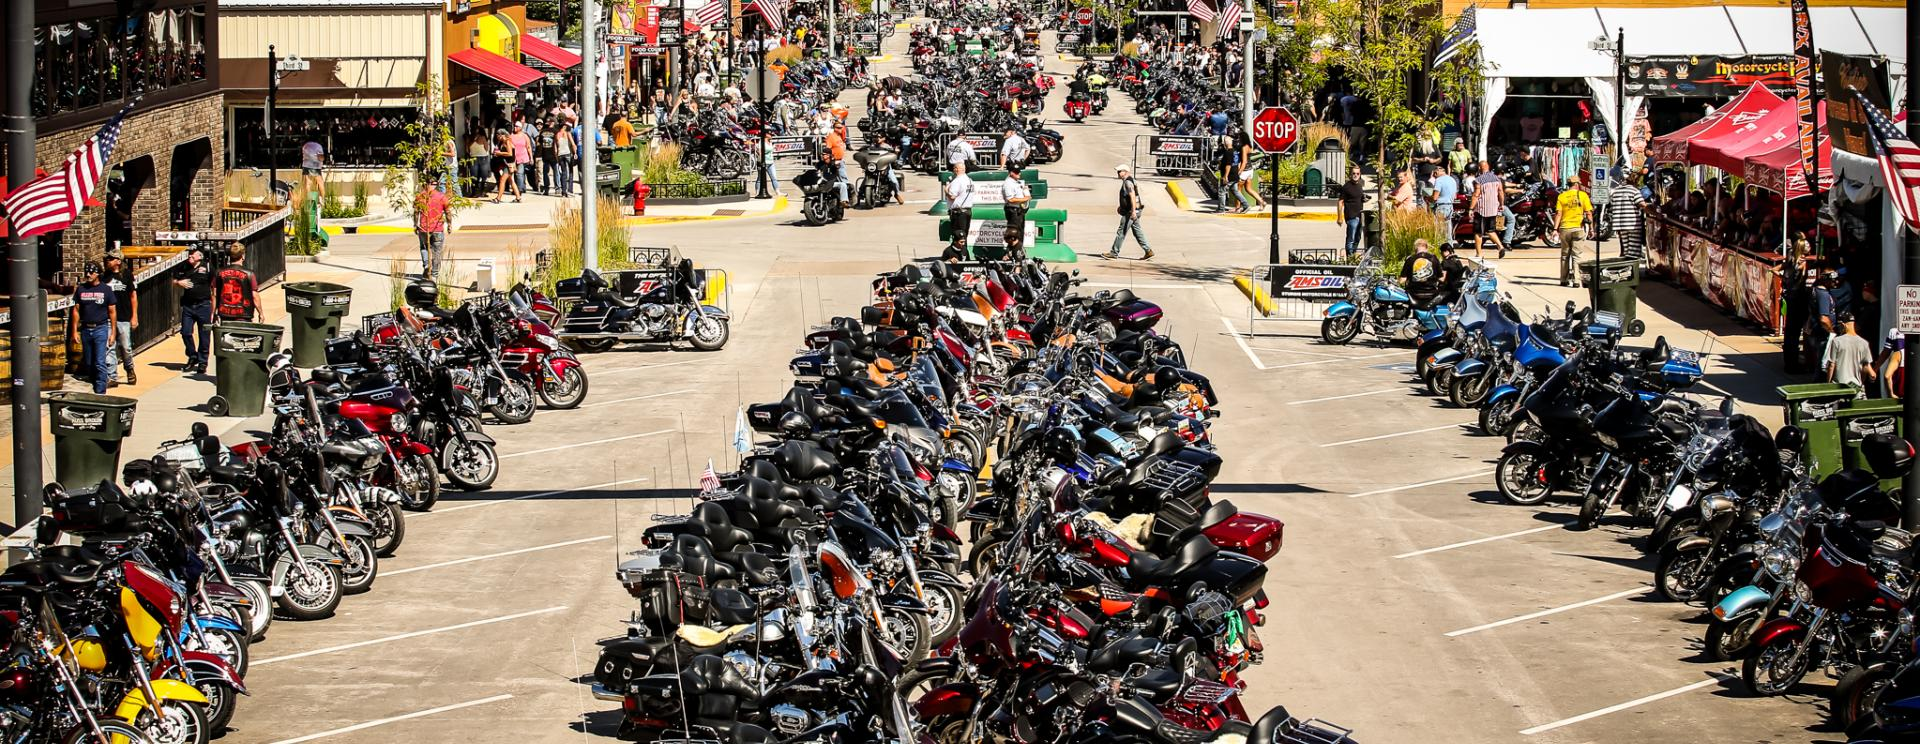 Day 1 of the 79th Sturgis Motorcycle Rally